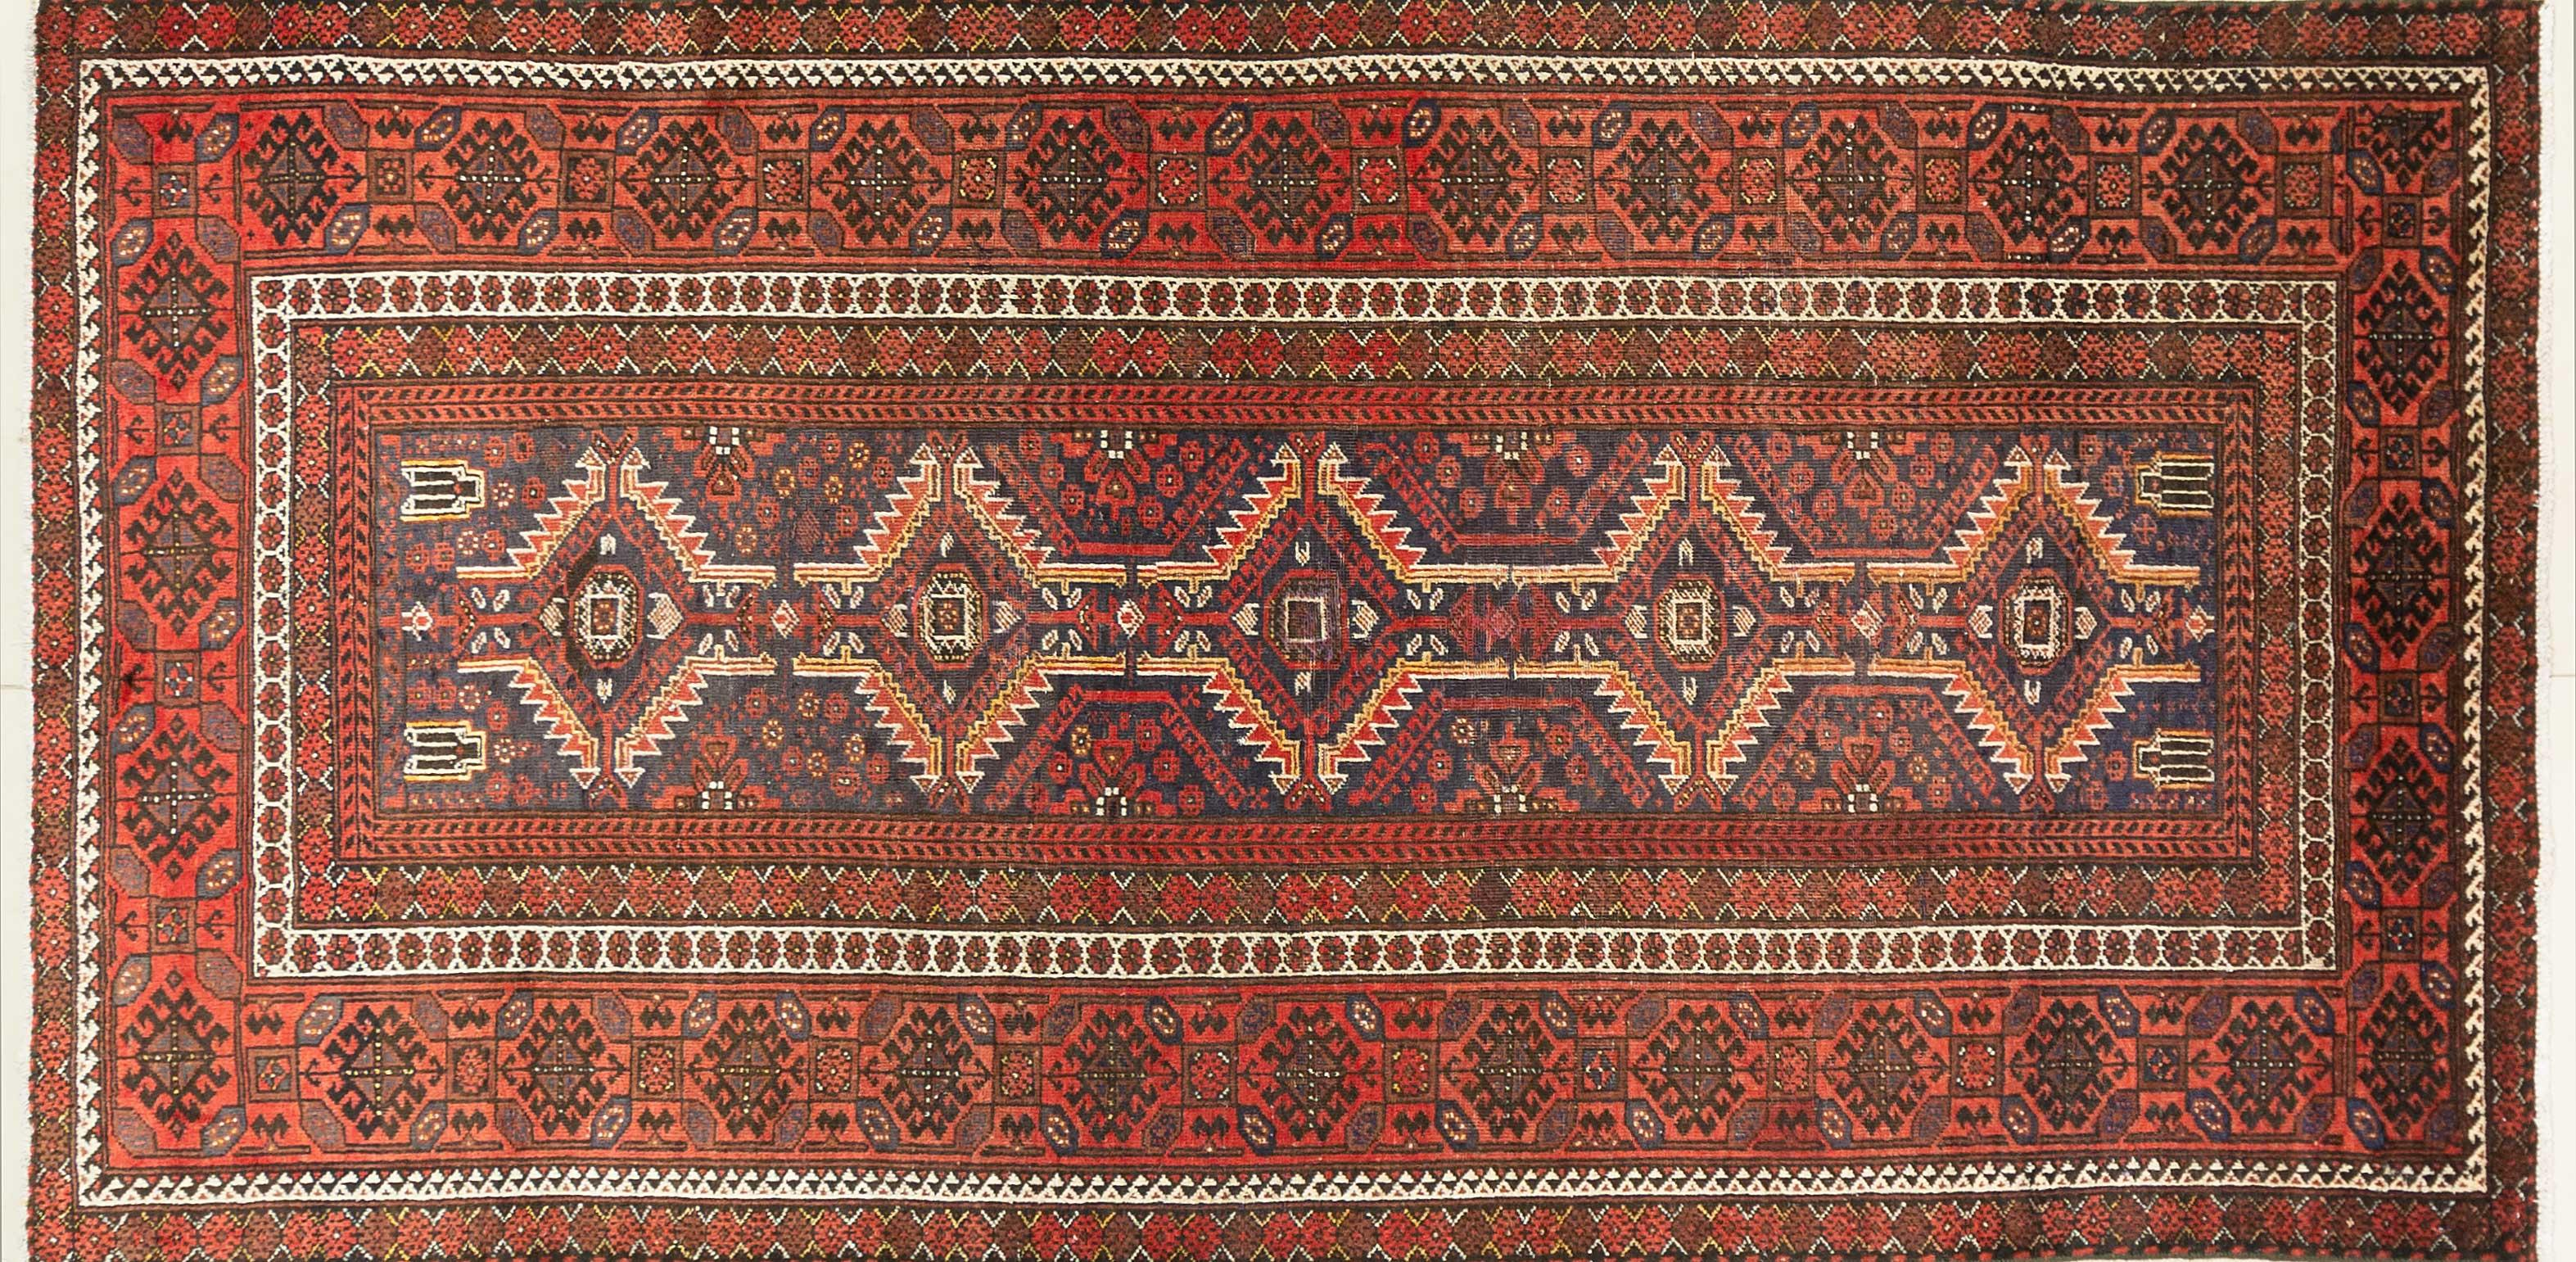 A Persian Hand Knotted Beluchi Rug, 270 x 133